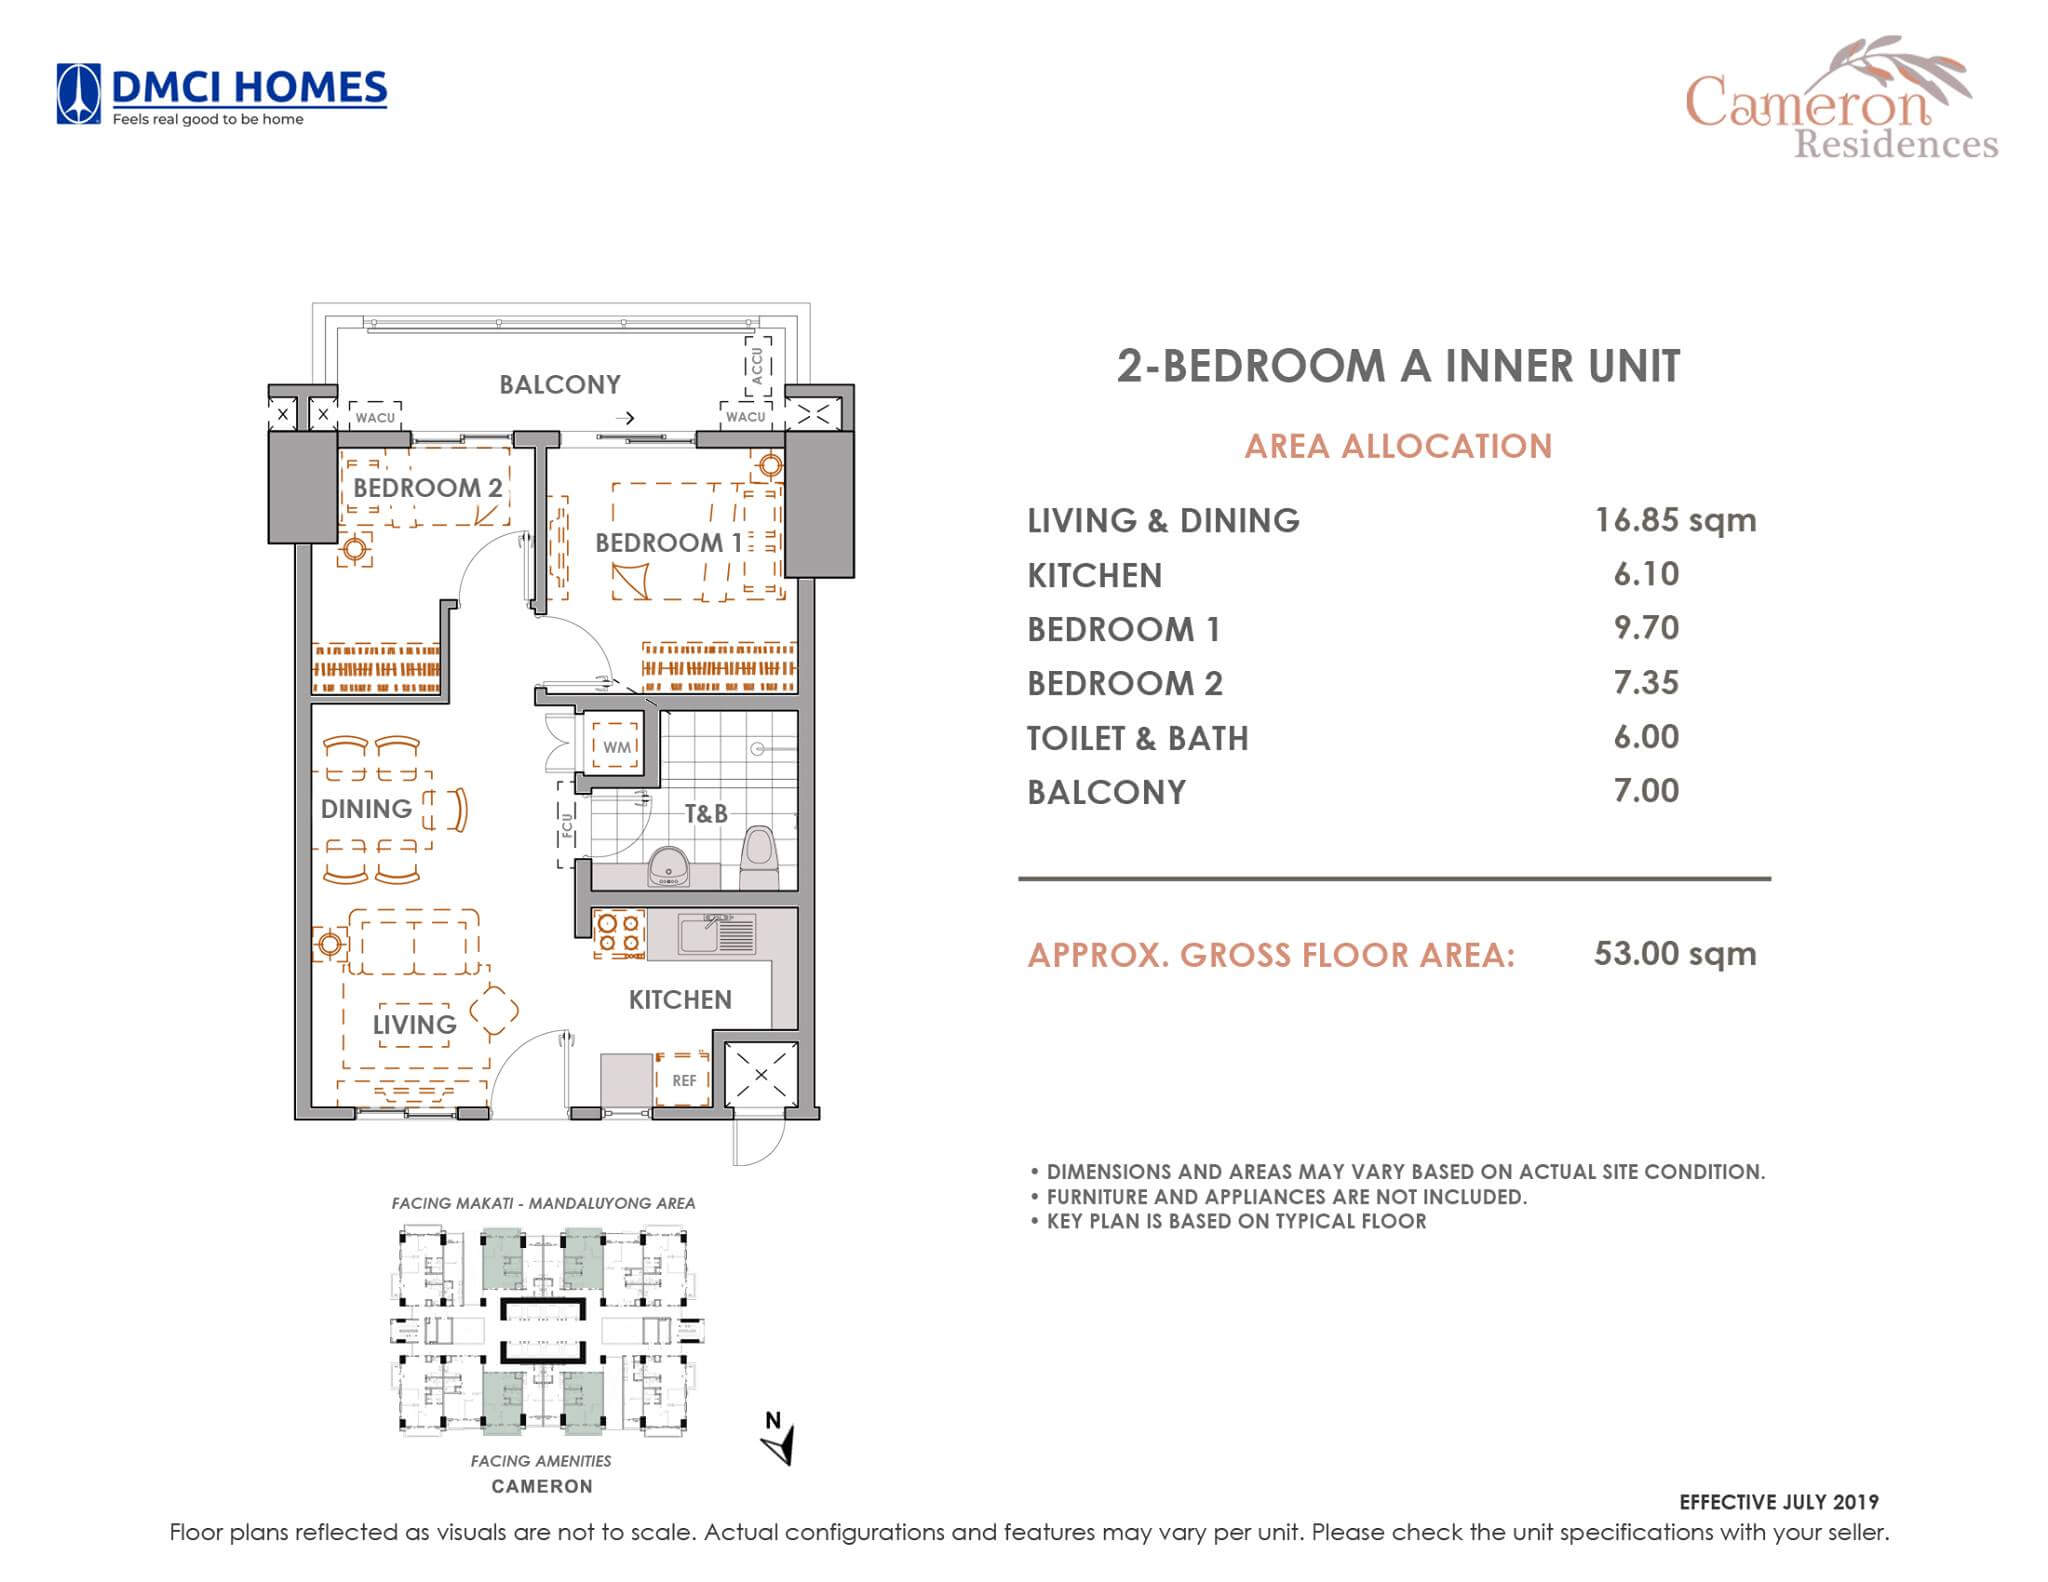 Cameron DMCI 2 Bedroo A Unit Layout